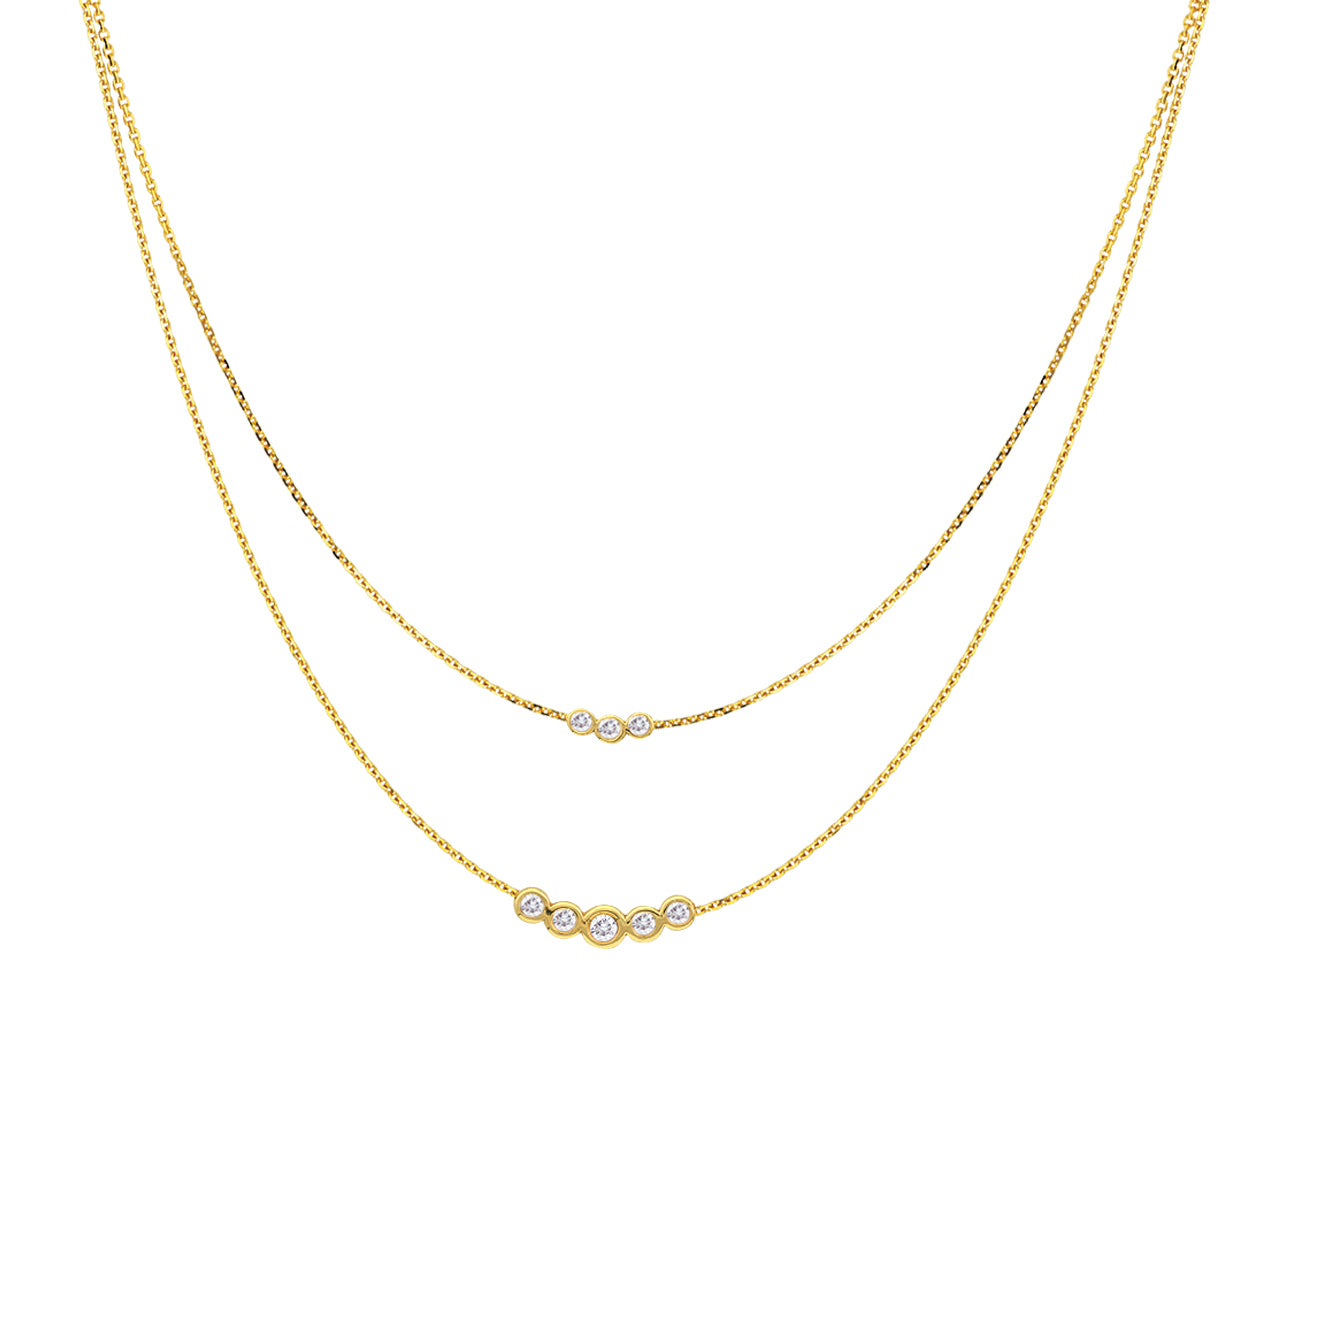 Double Strand Diamond Necklace